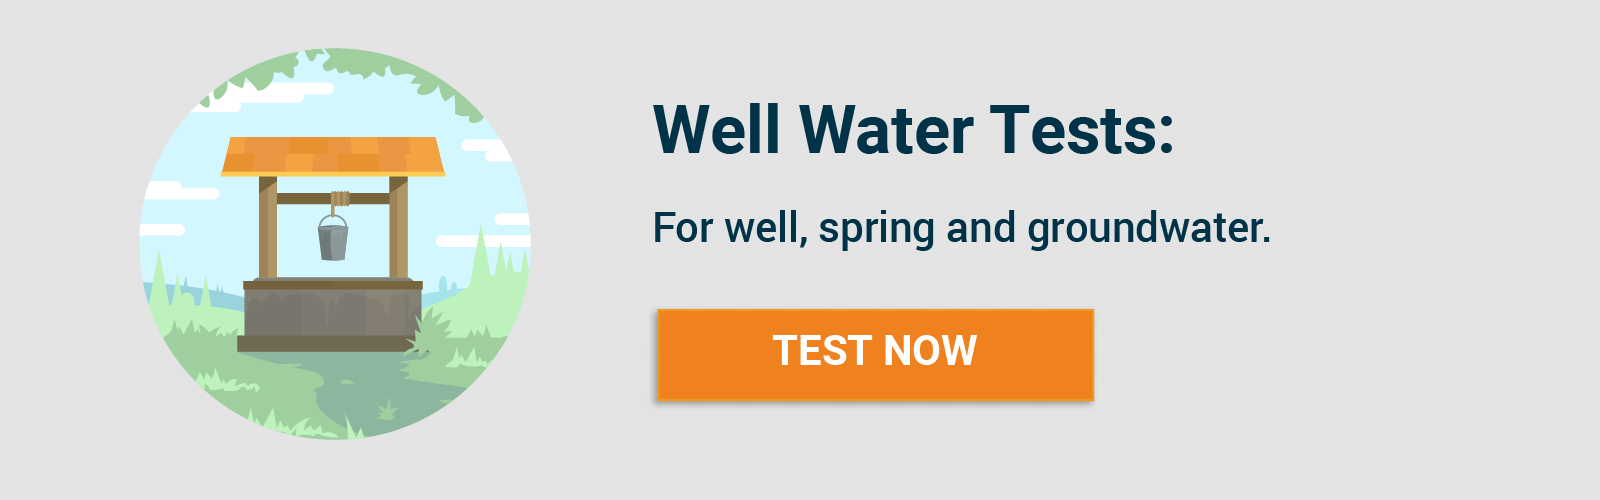 Well Water Tests